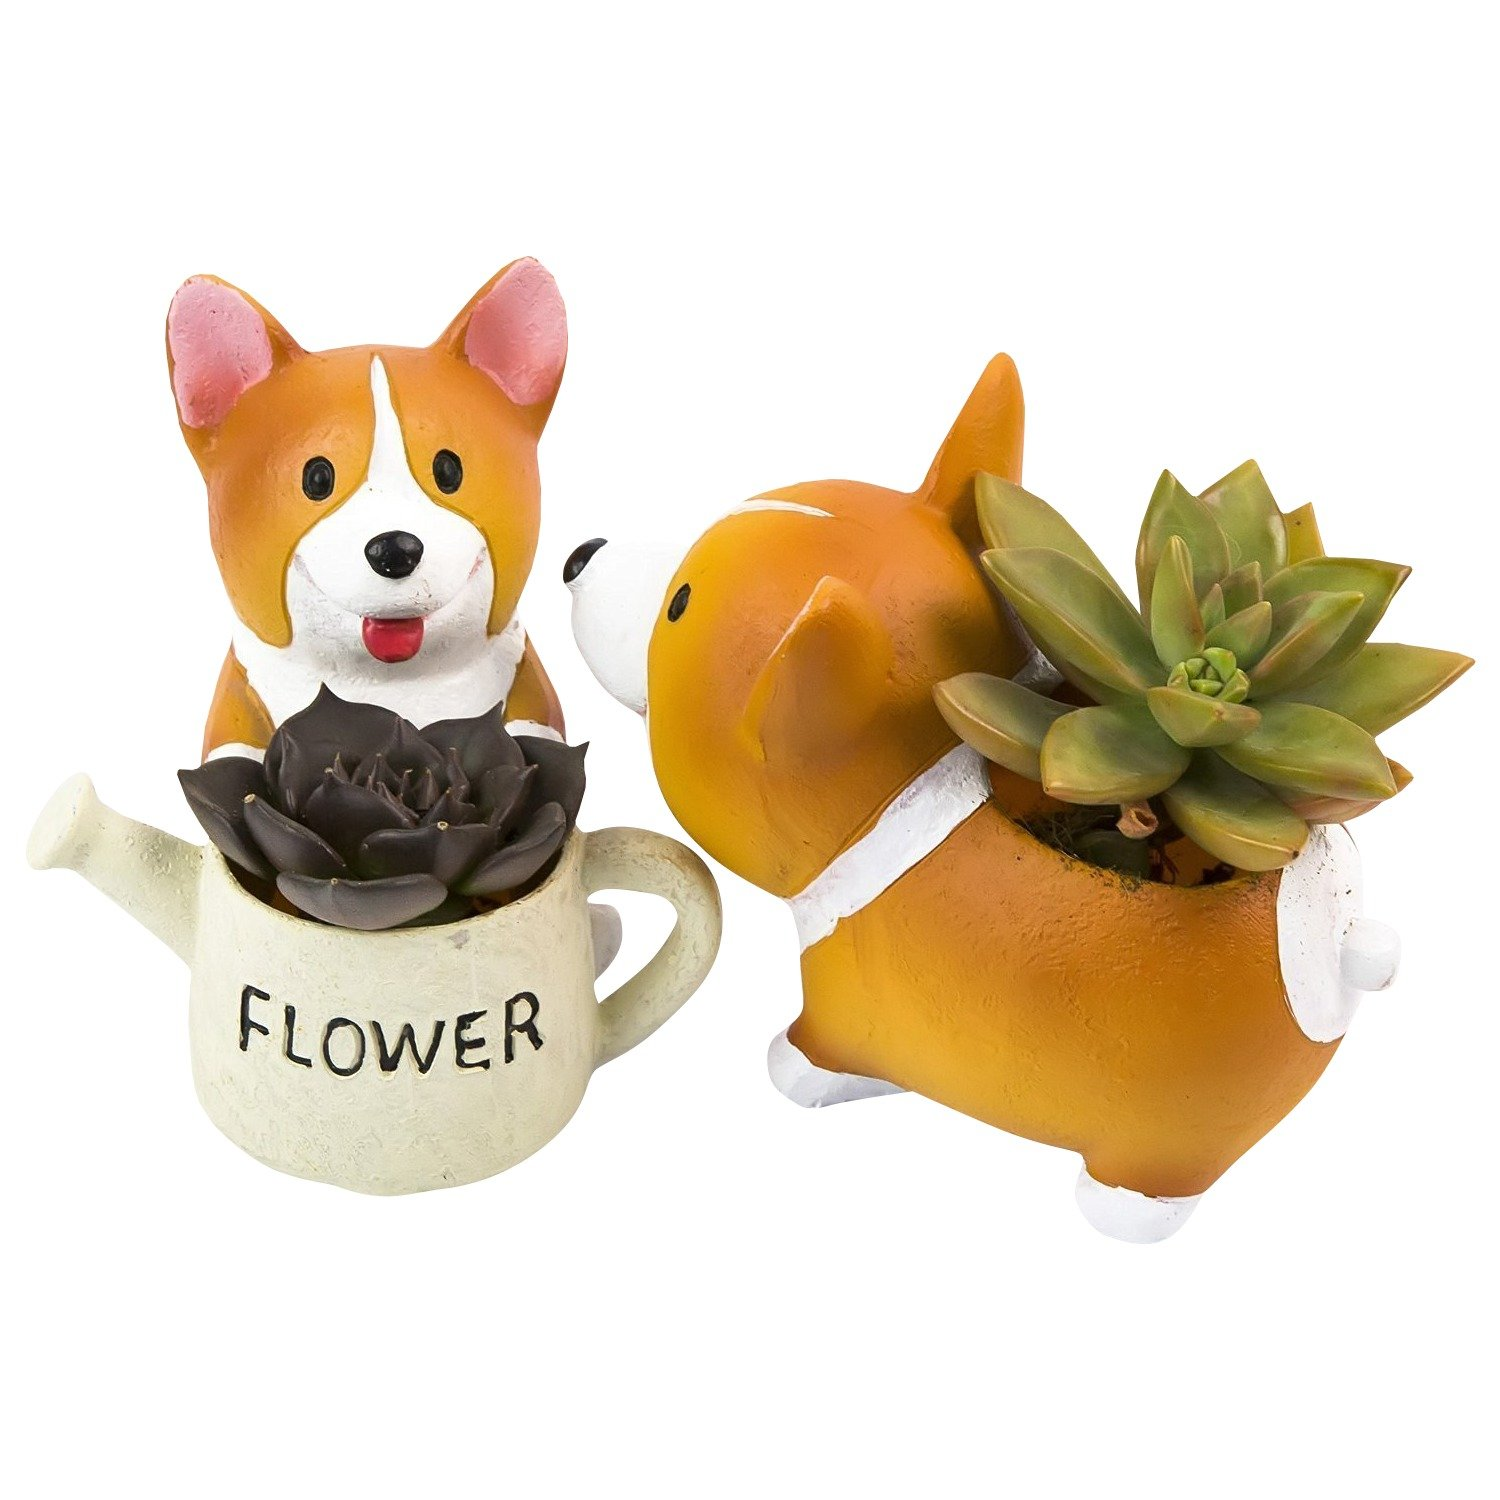 Corgi Dog Shaped Succulent Flower Pot - 2 In Set